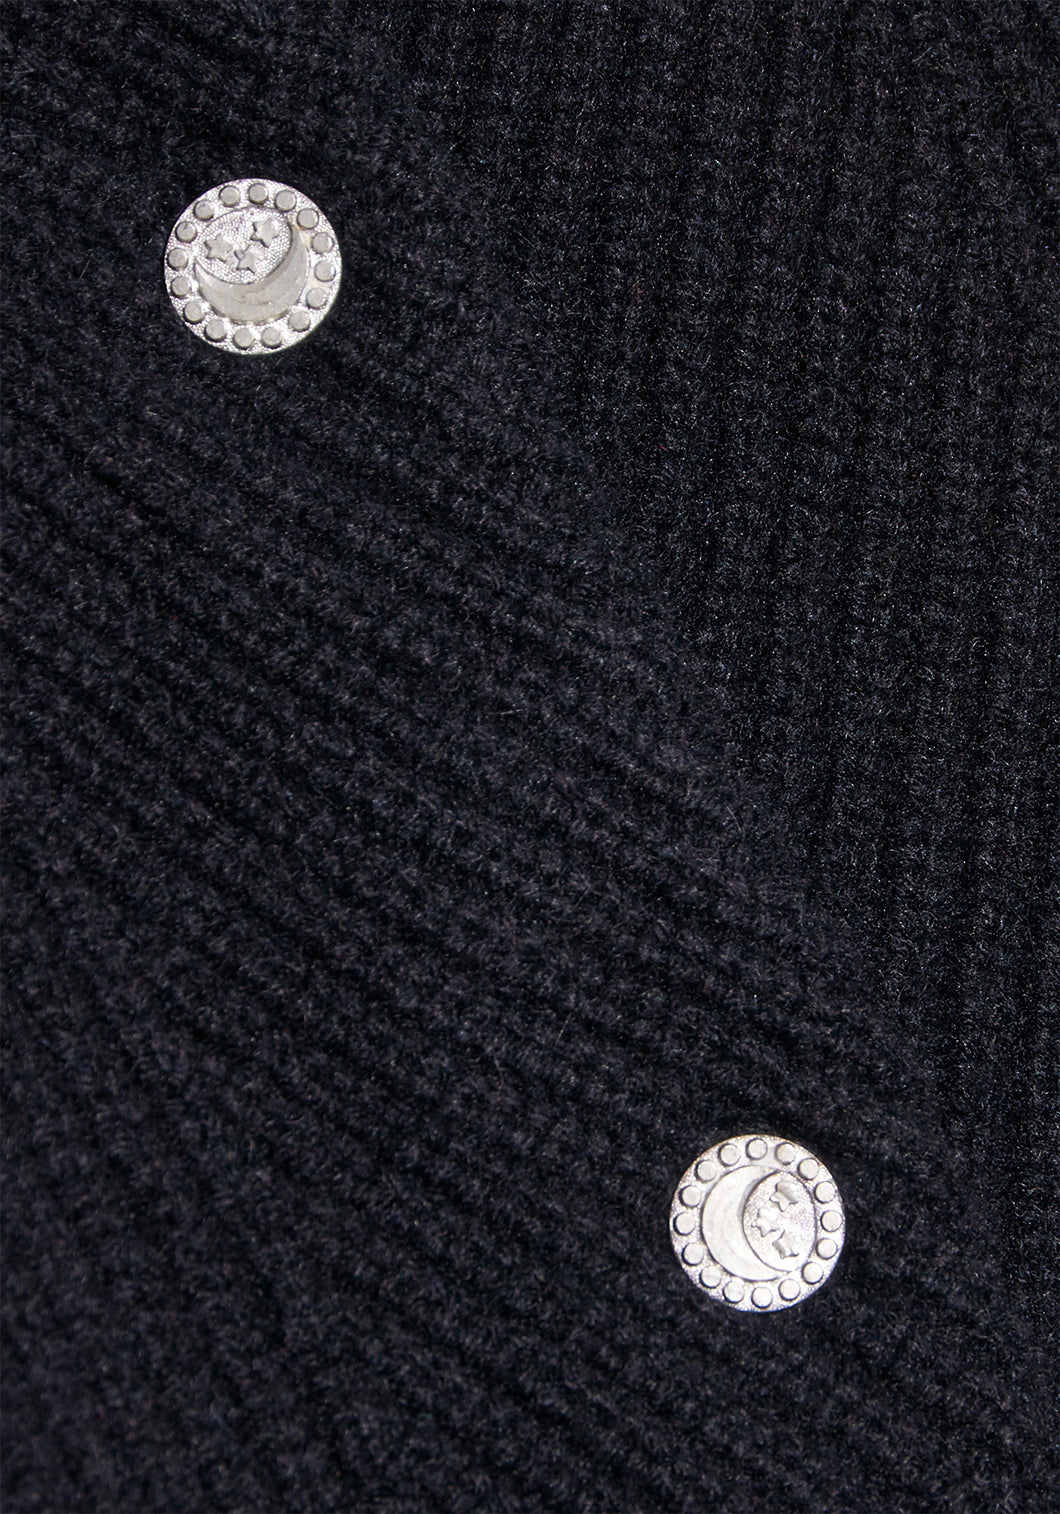 Black Cashmere Cardigan - XS - Stars and Moon